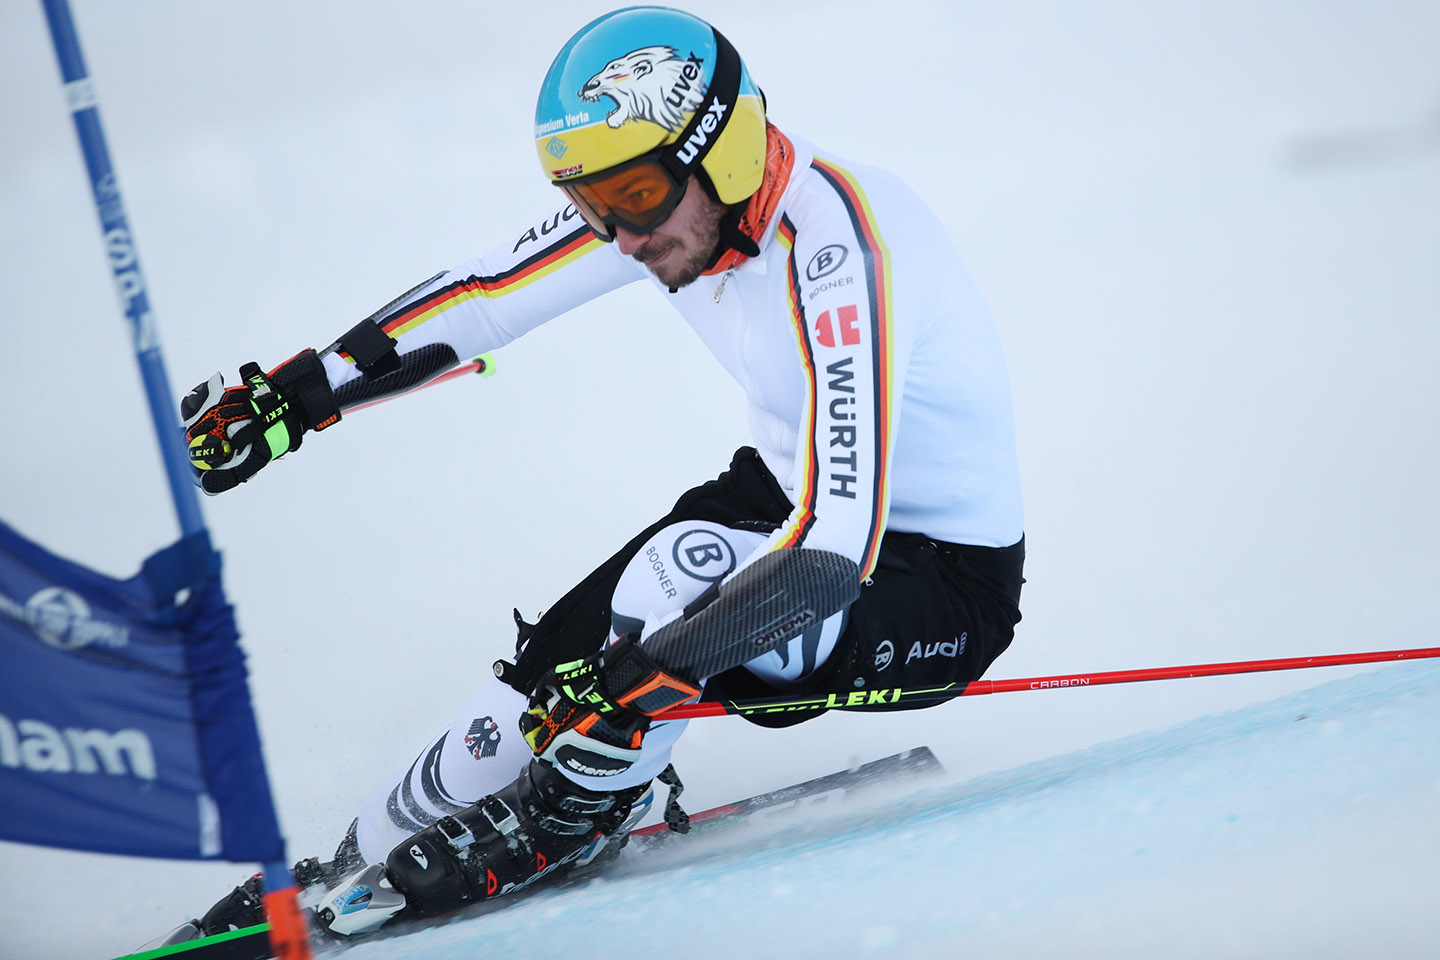 Felix Neureuther FIS World Cup